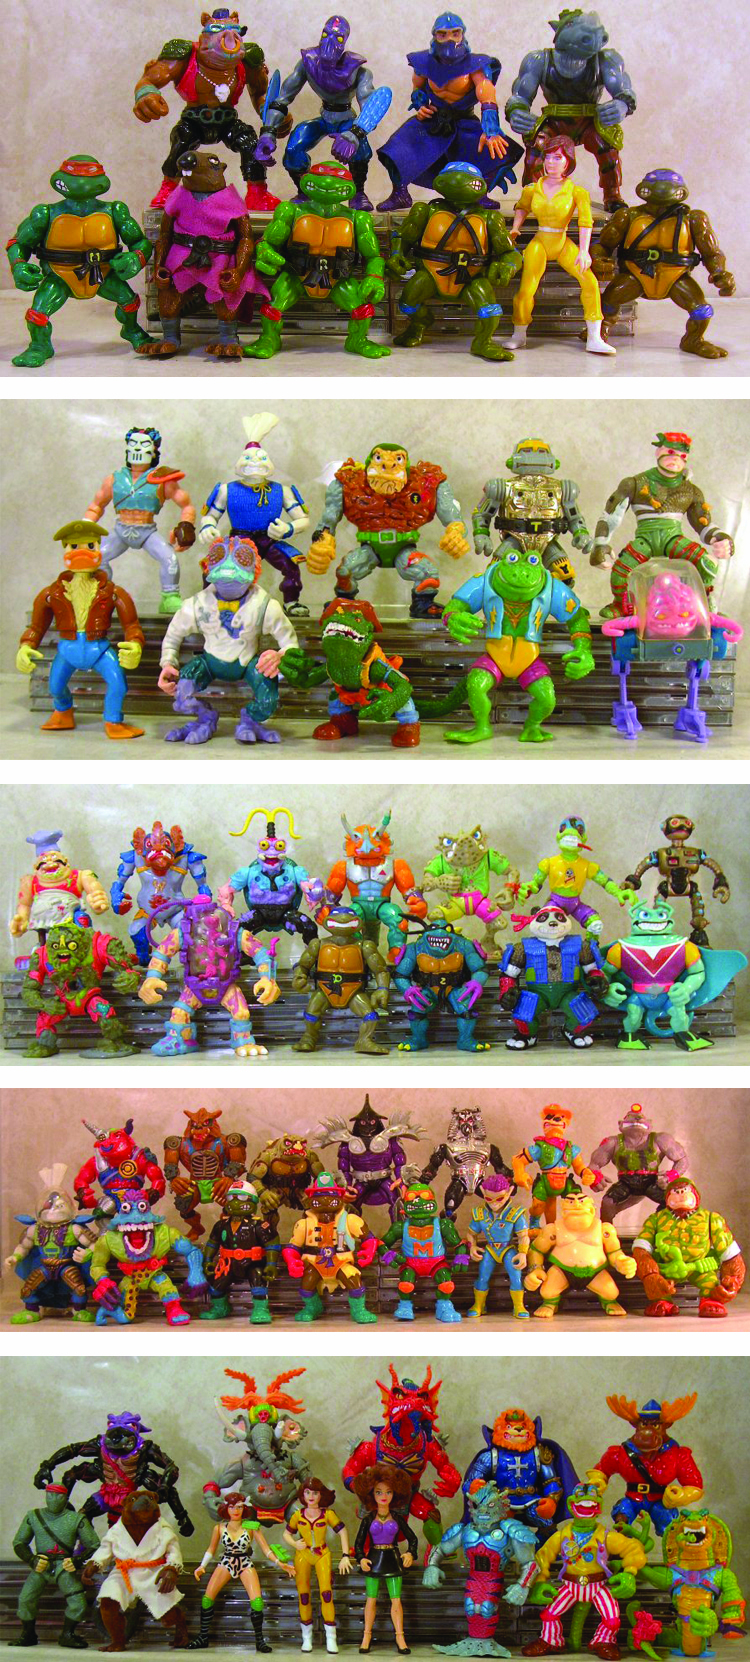 Ninja Turtles Toys : Teenage mutant ninja turtles